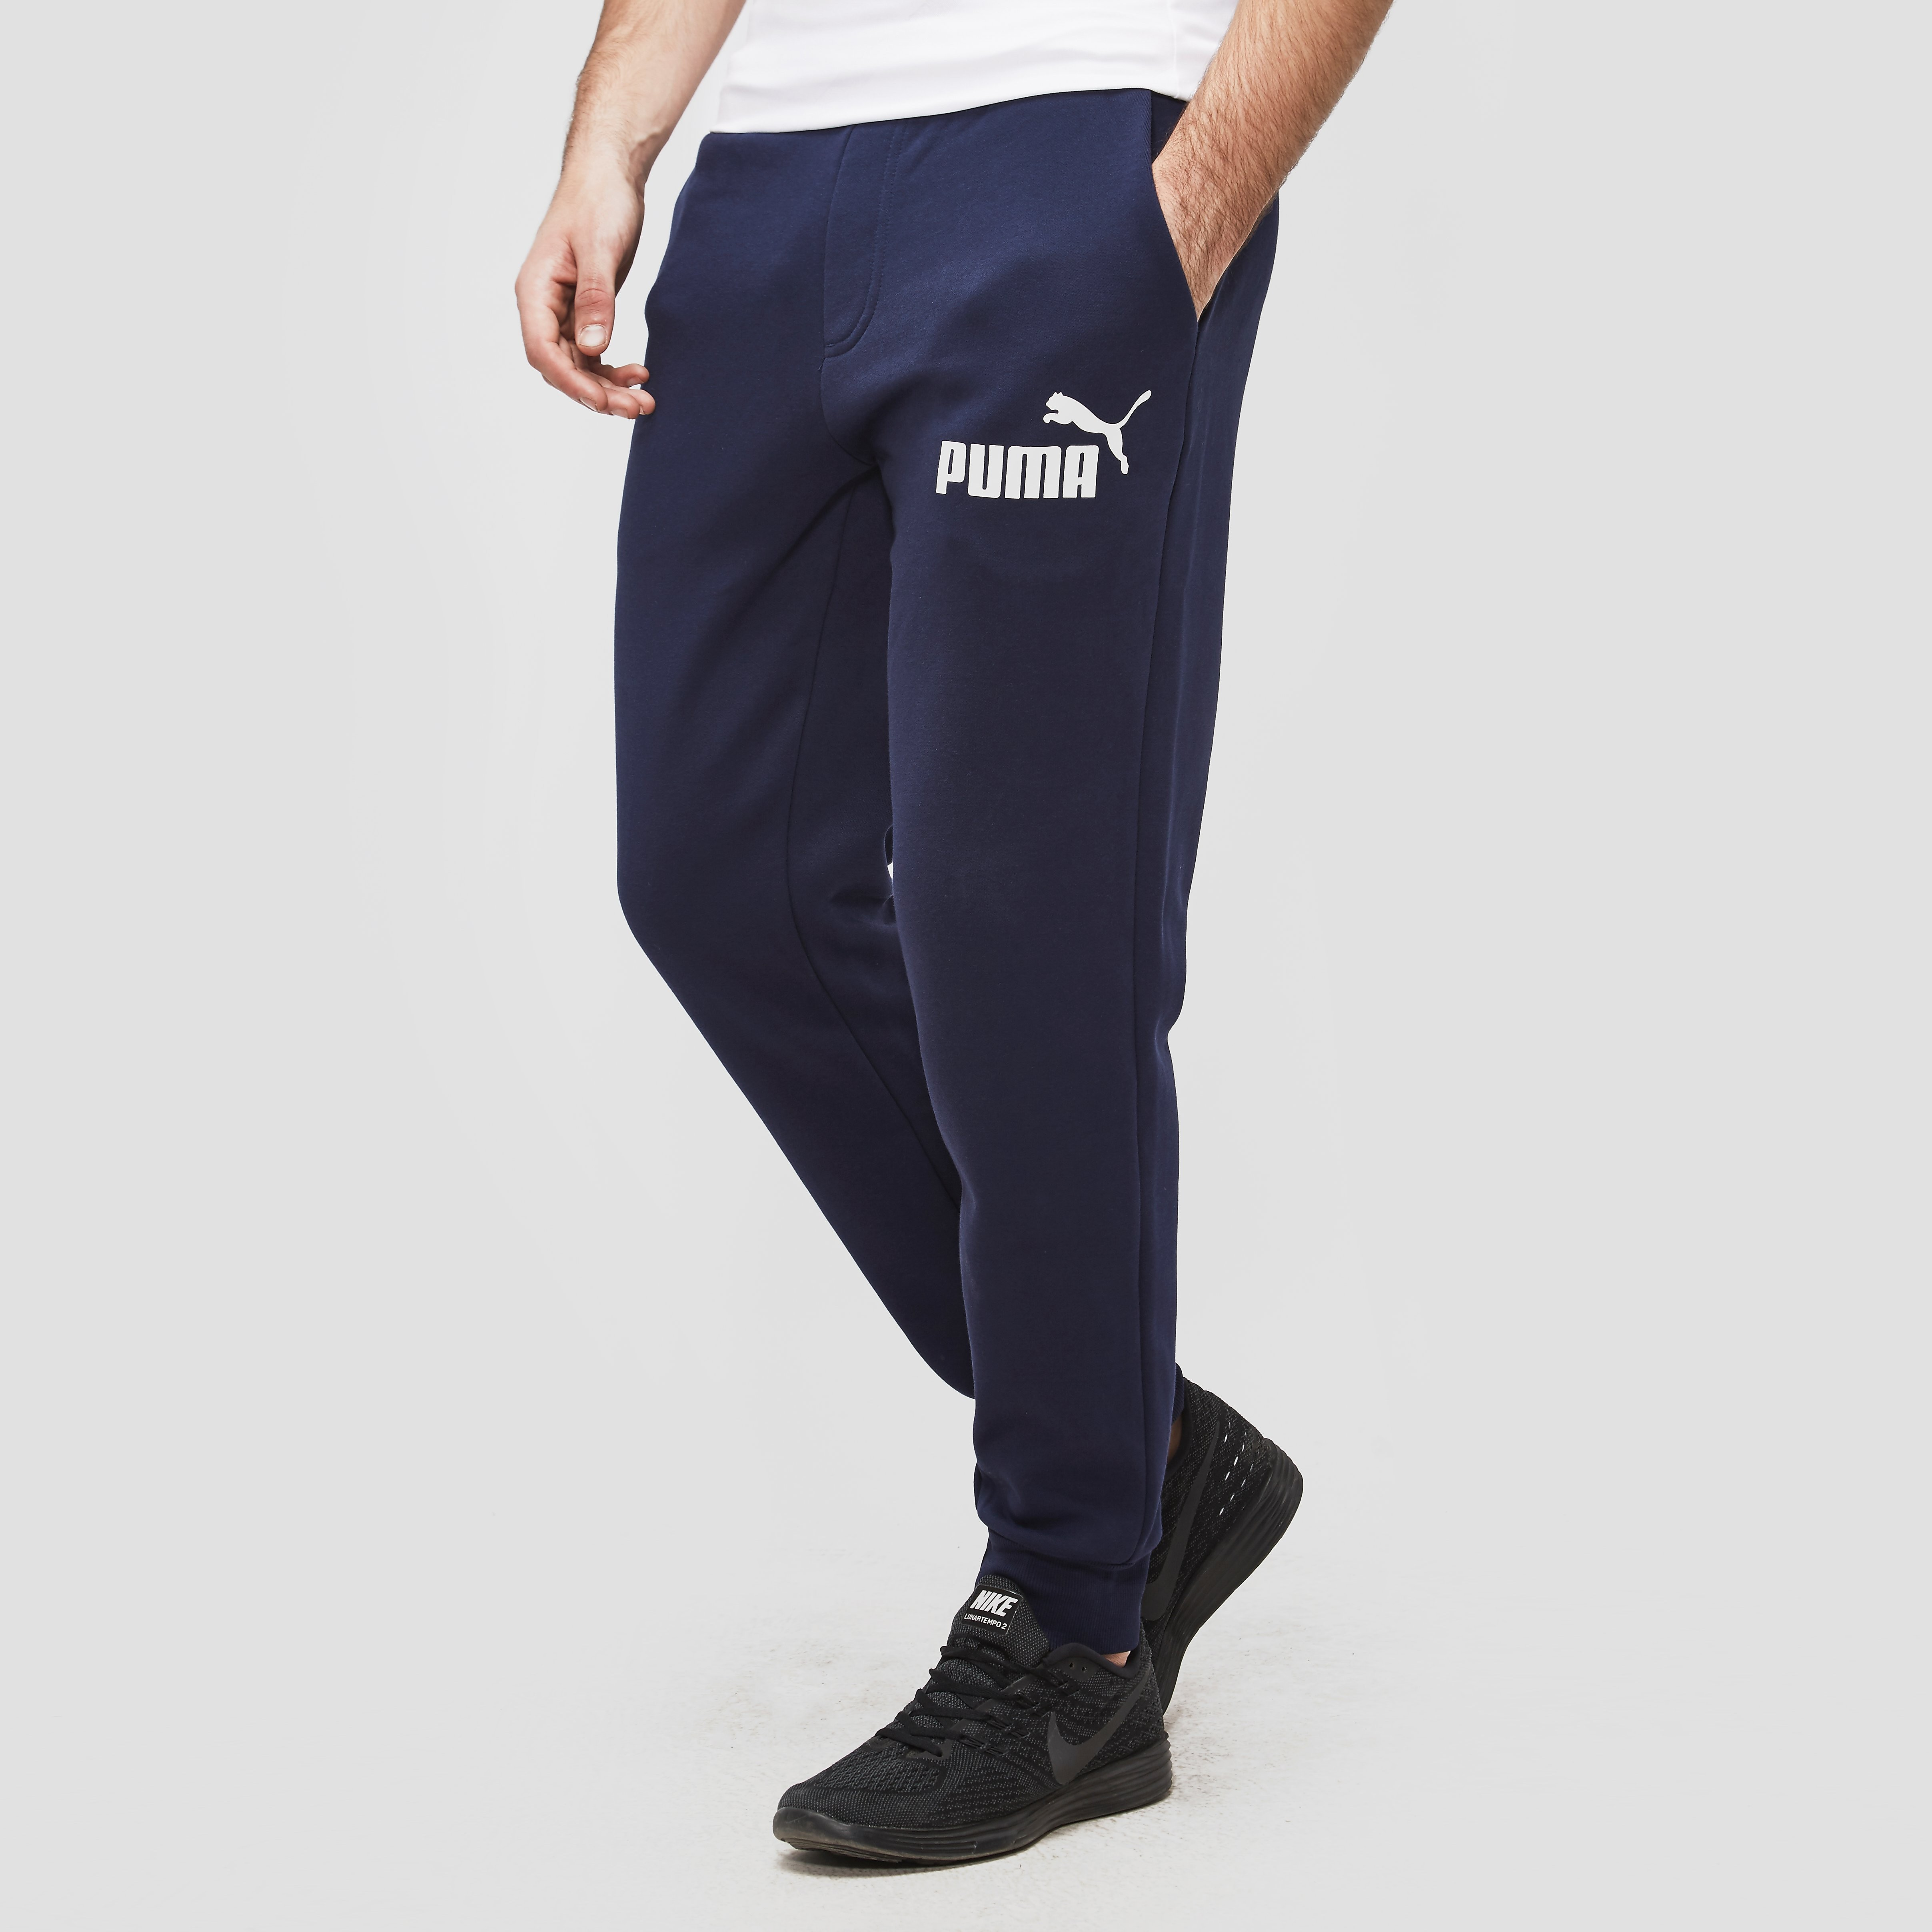 PUMA CLOSED JOGGINGSBROEK HEREN